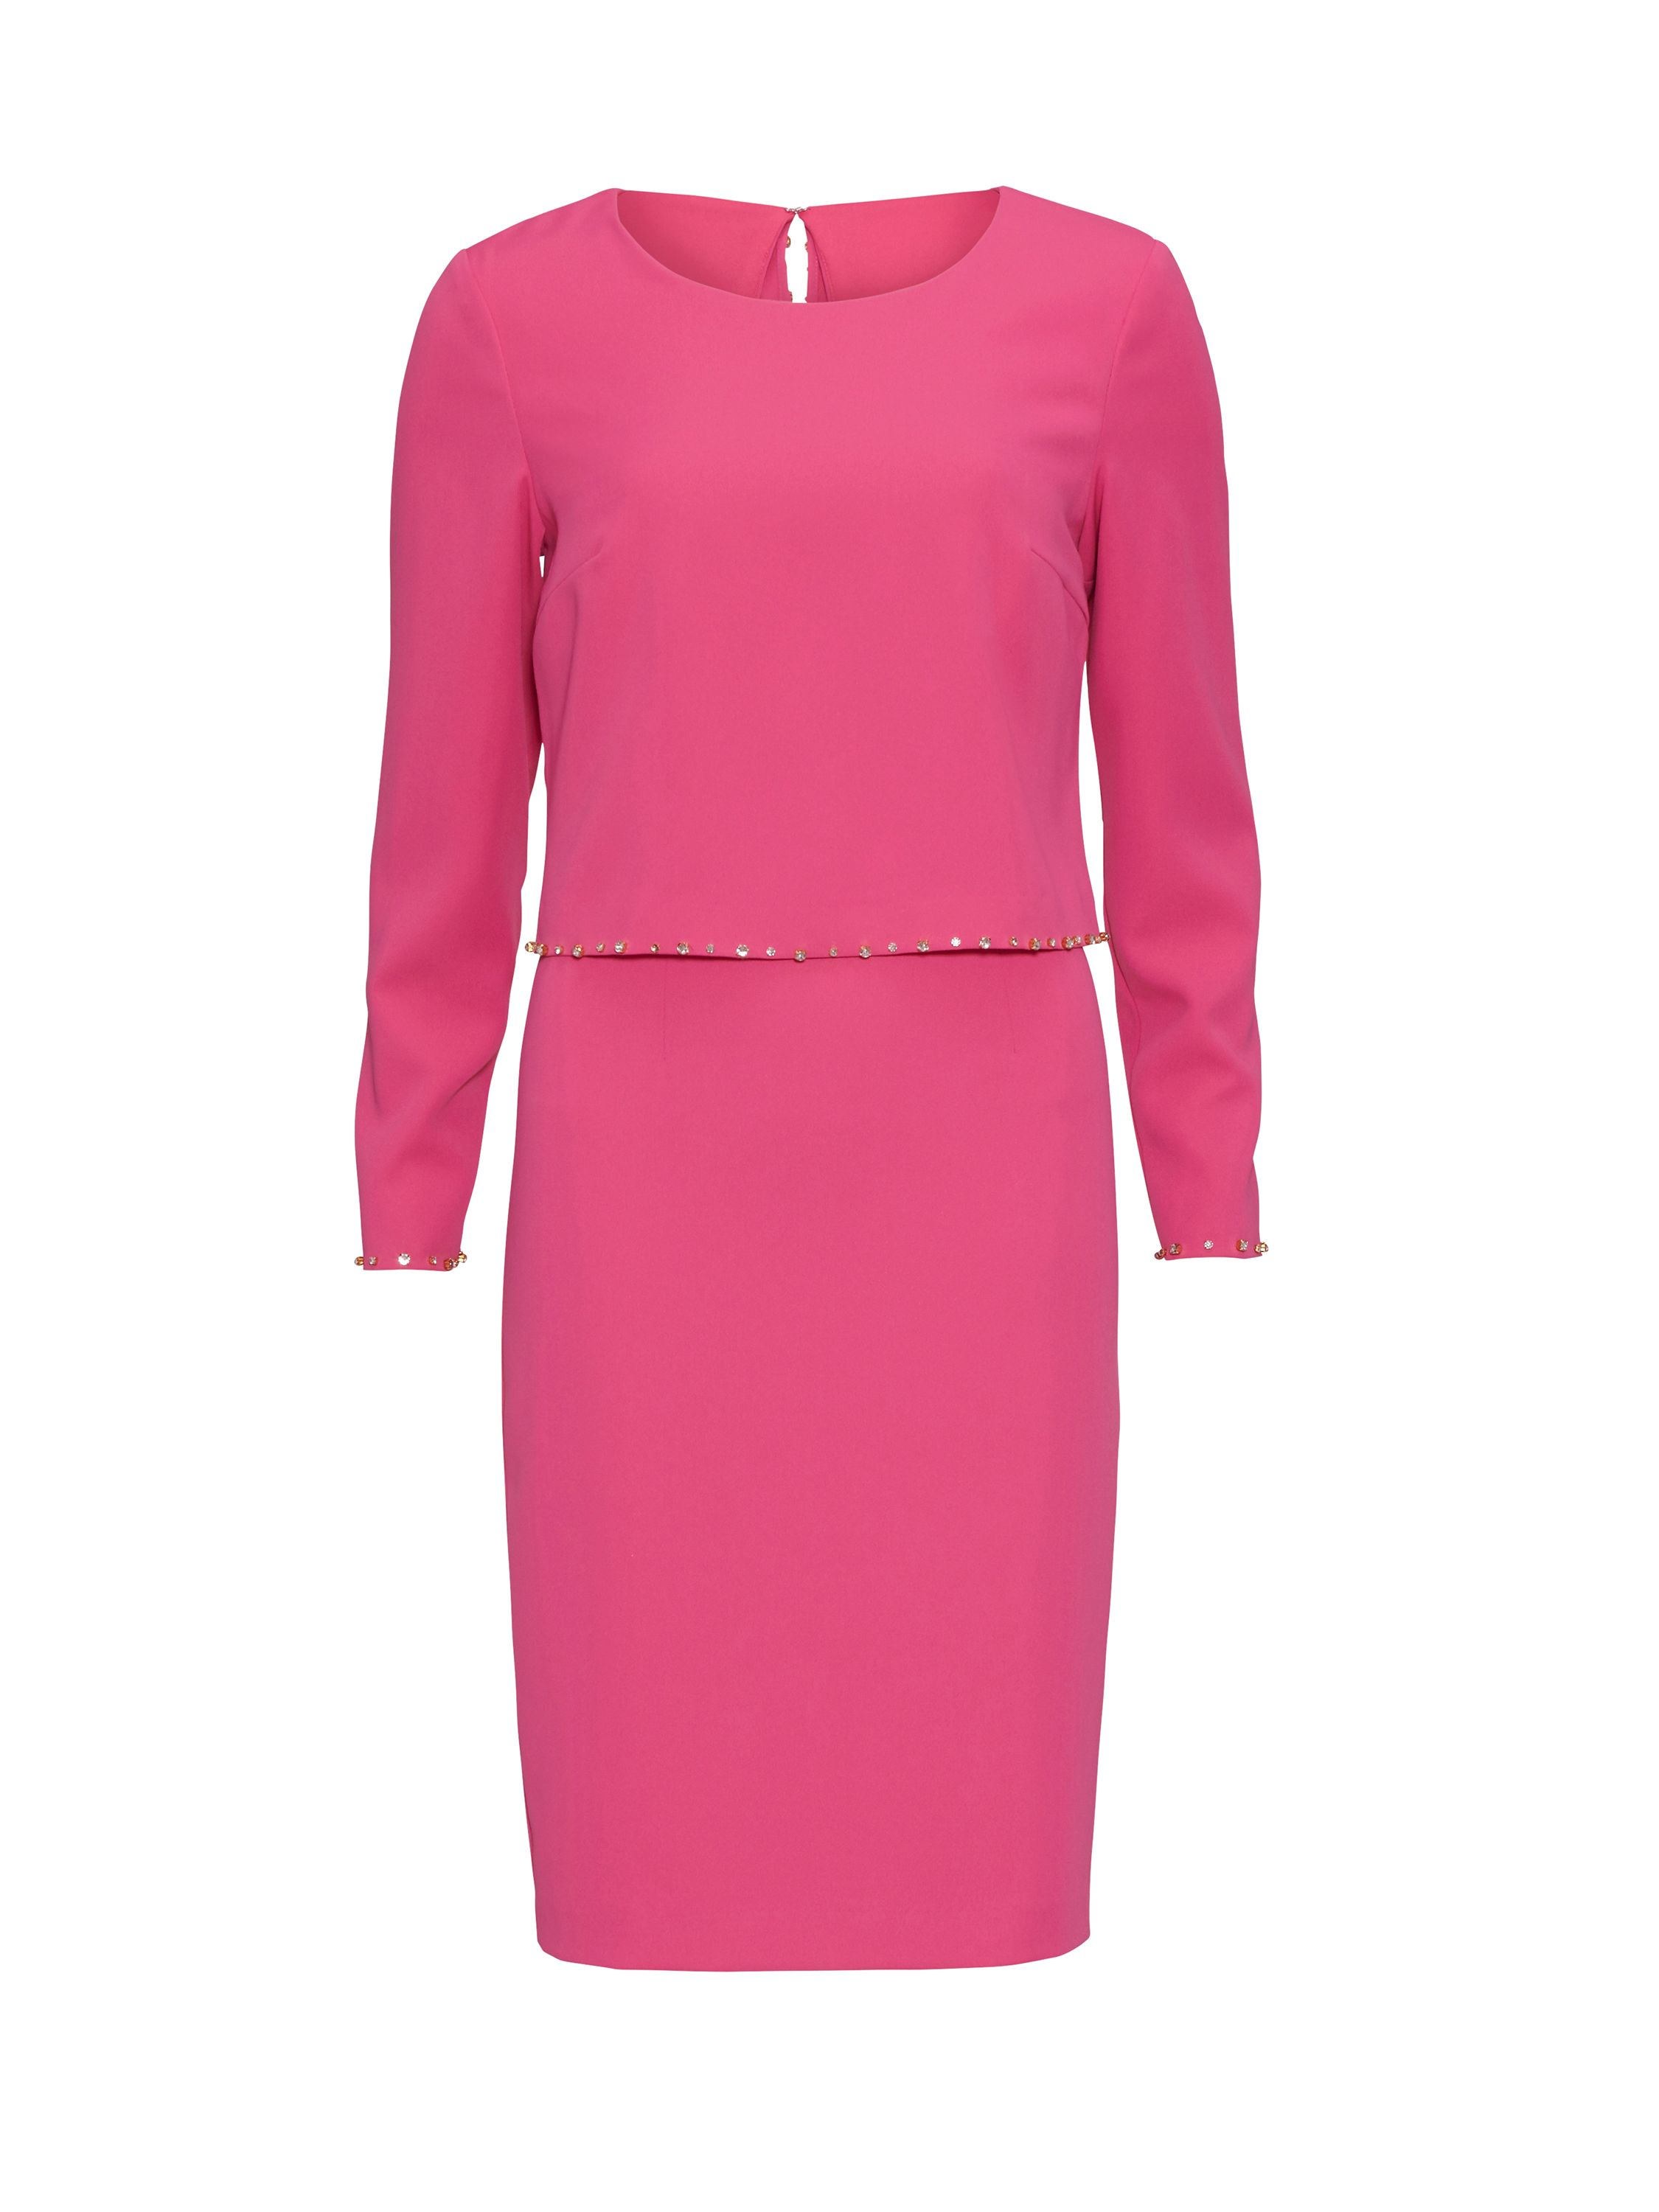 Gina Bacconi Crepe Dress And Beaded Edge Over Top, Pink